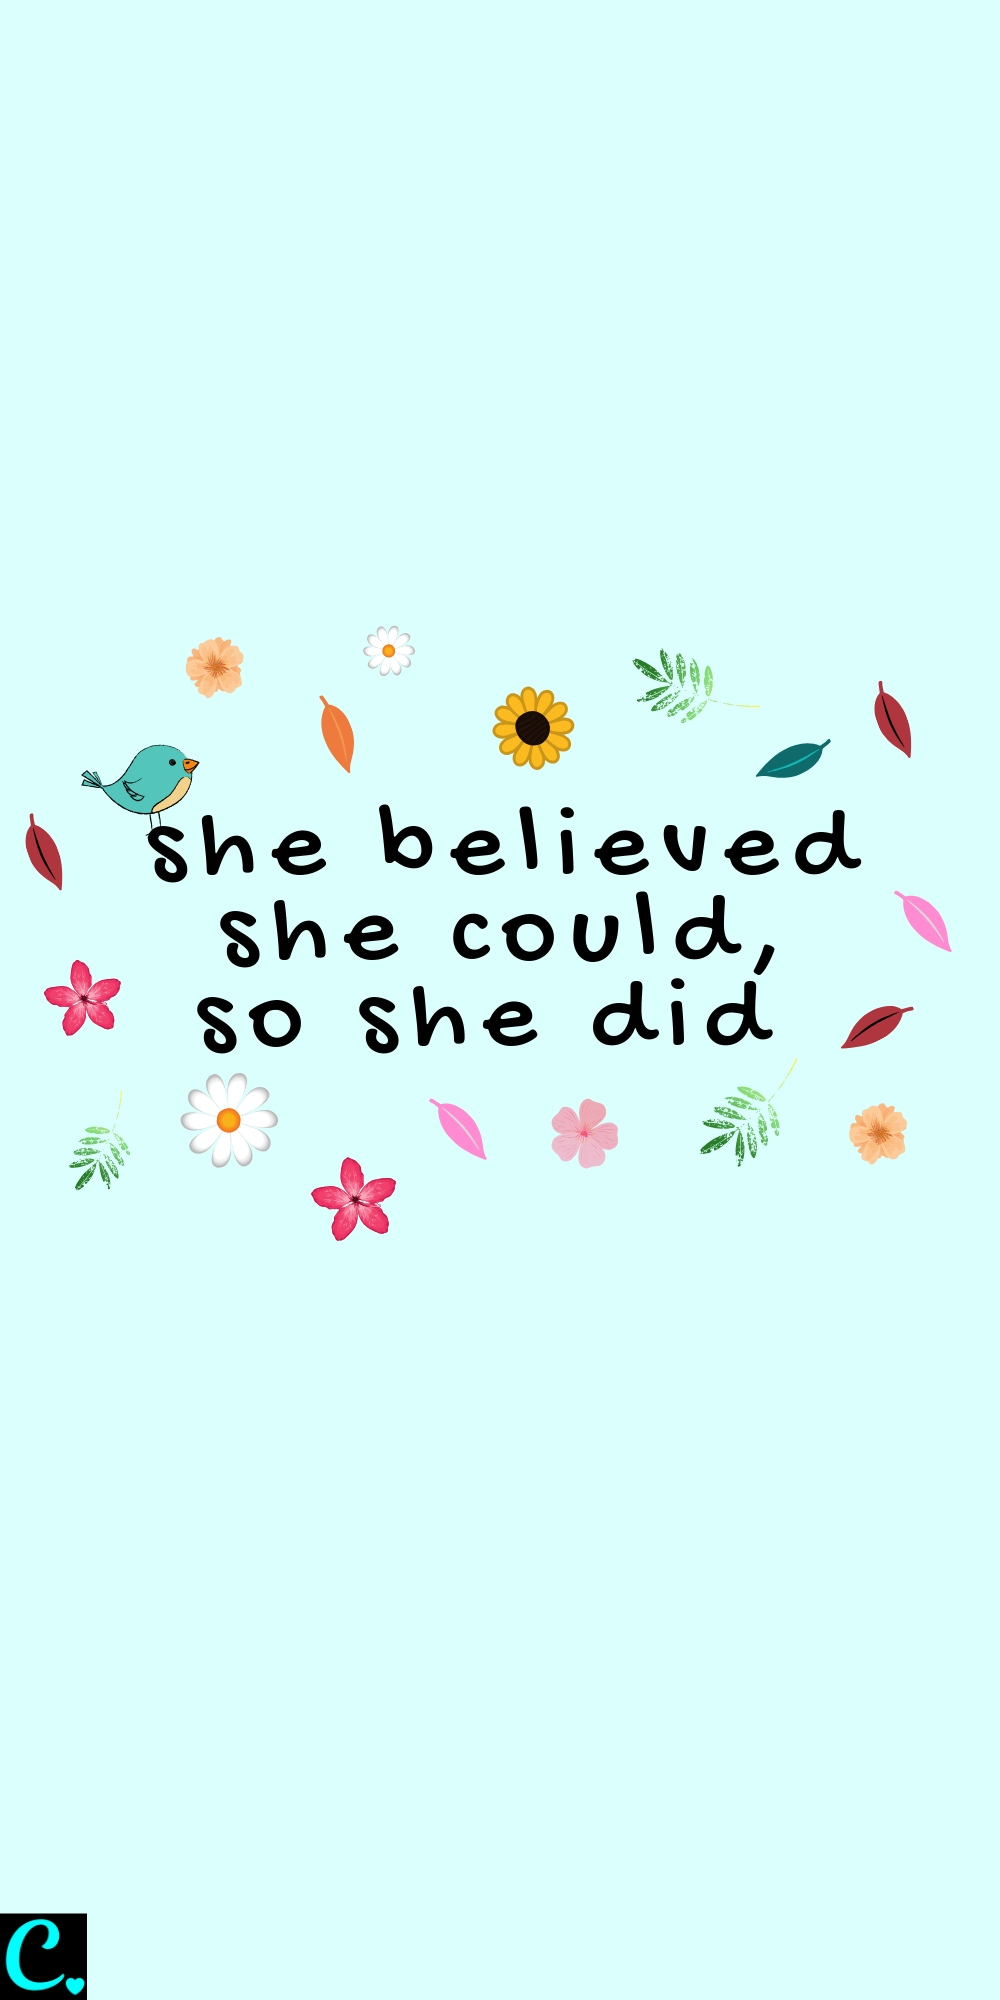 She believed she could so she did! Quotes about success, determination, self-confidence & self-belief #successmindset #successfulwomen #successquotes